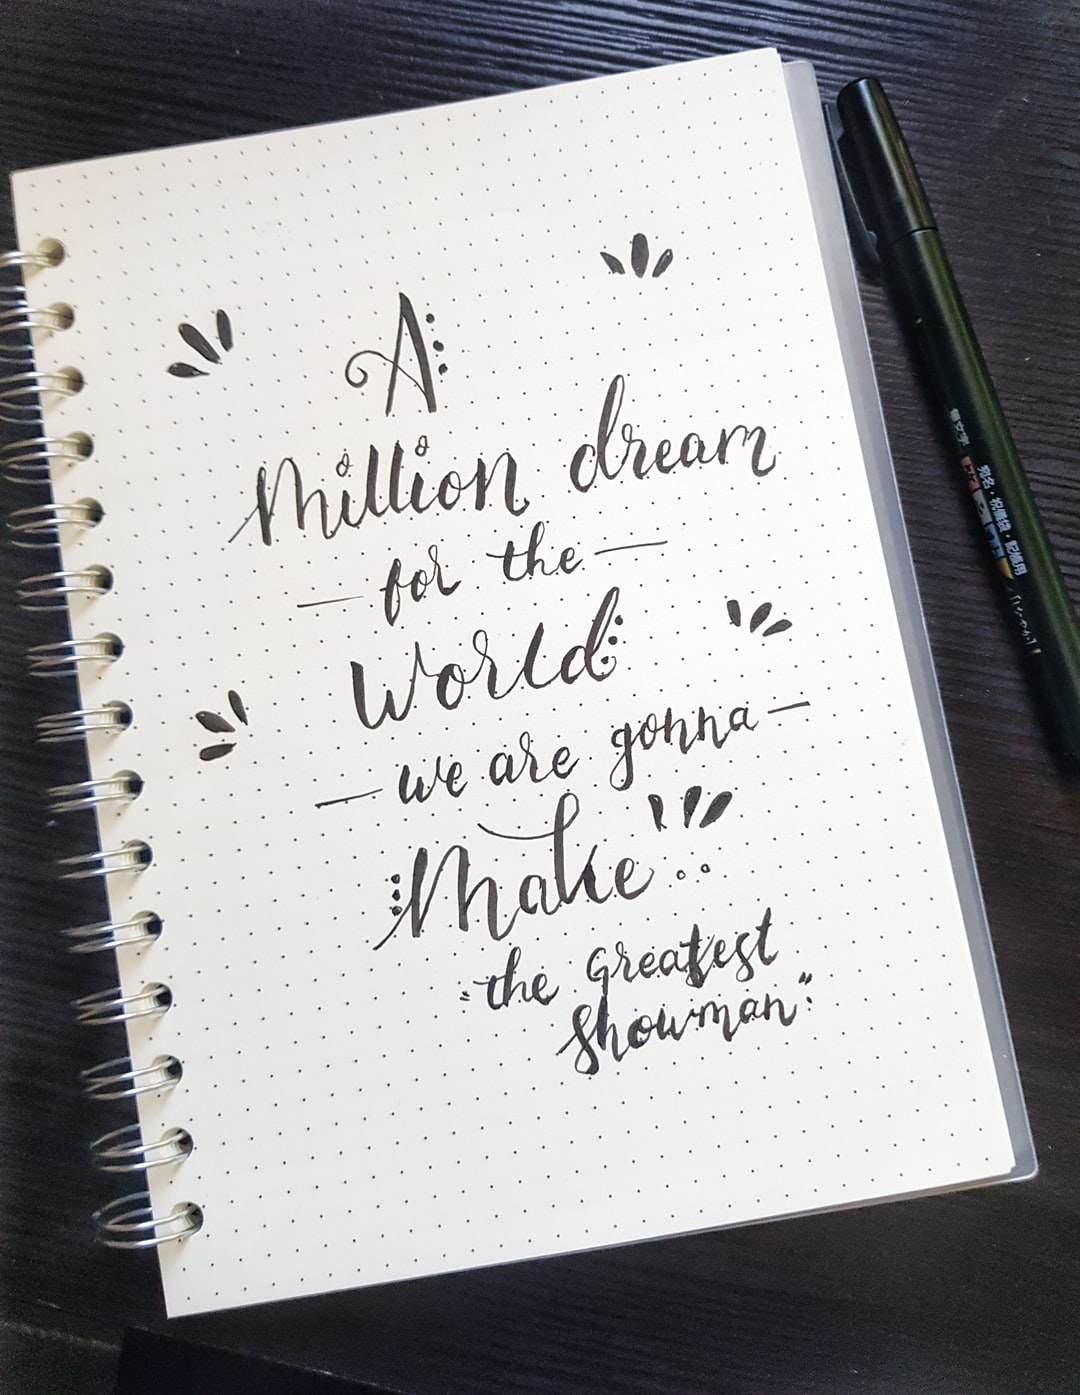 Calligraphy quotes/song